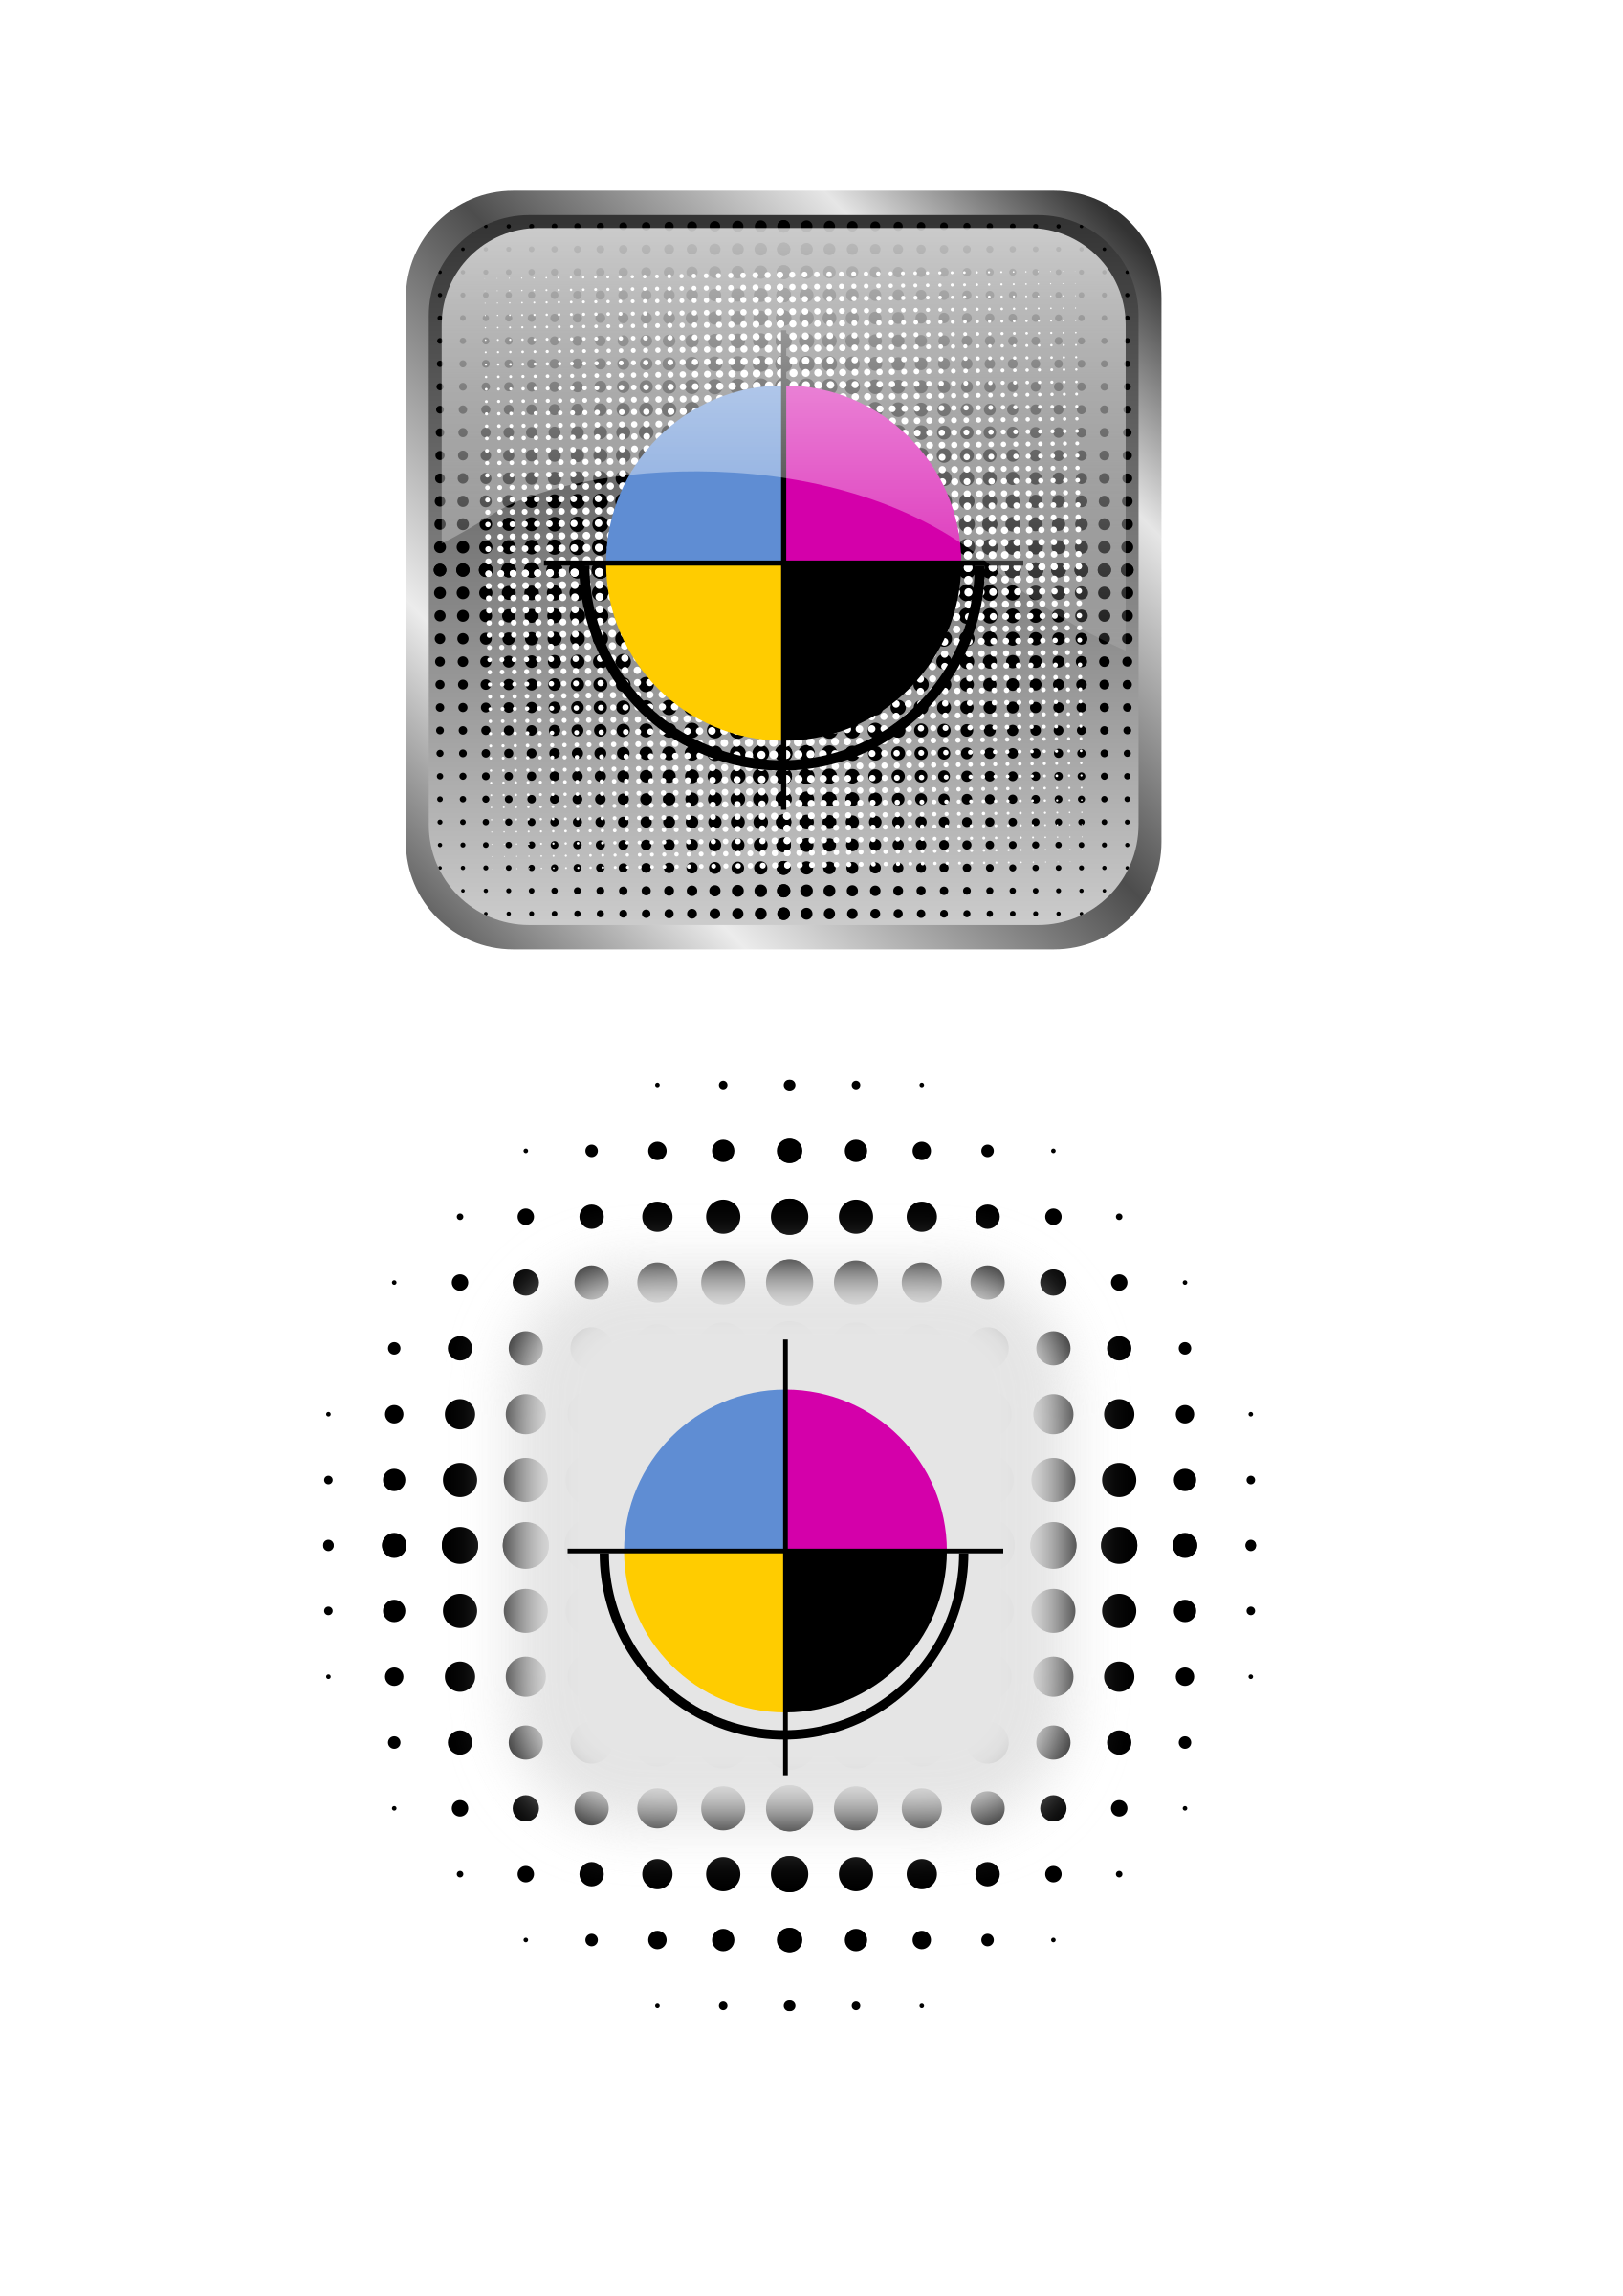 CMYK icons by Gespenst